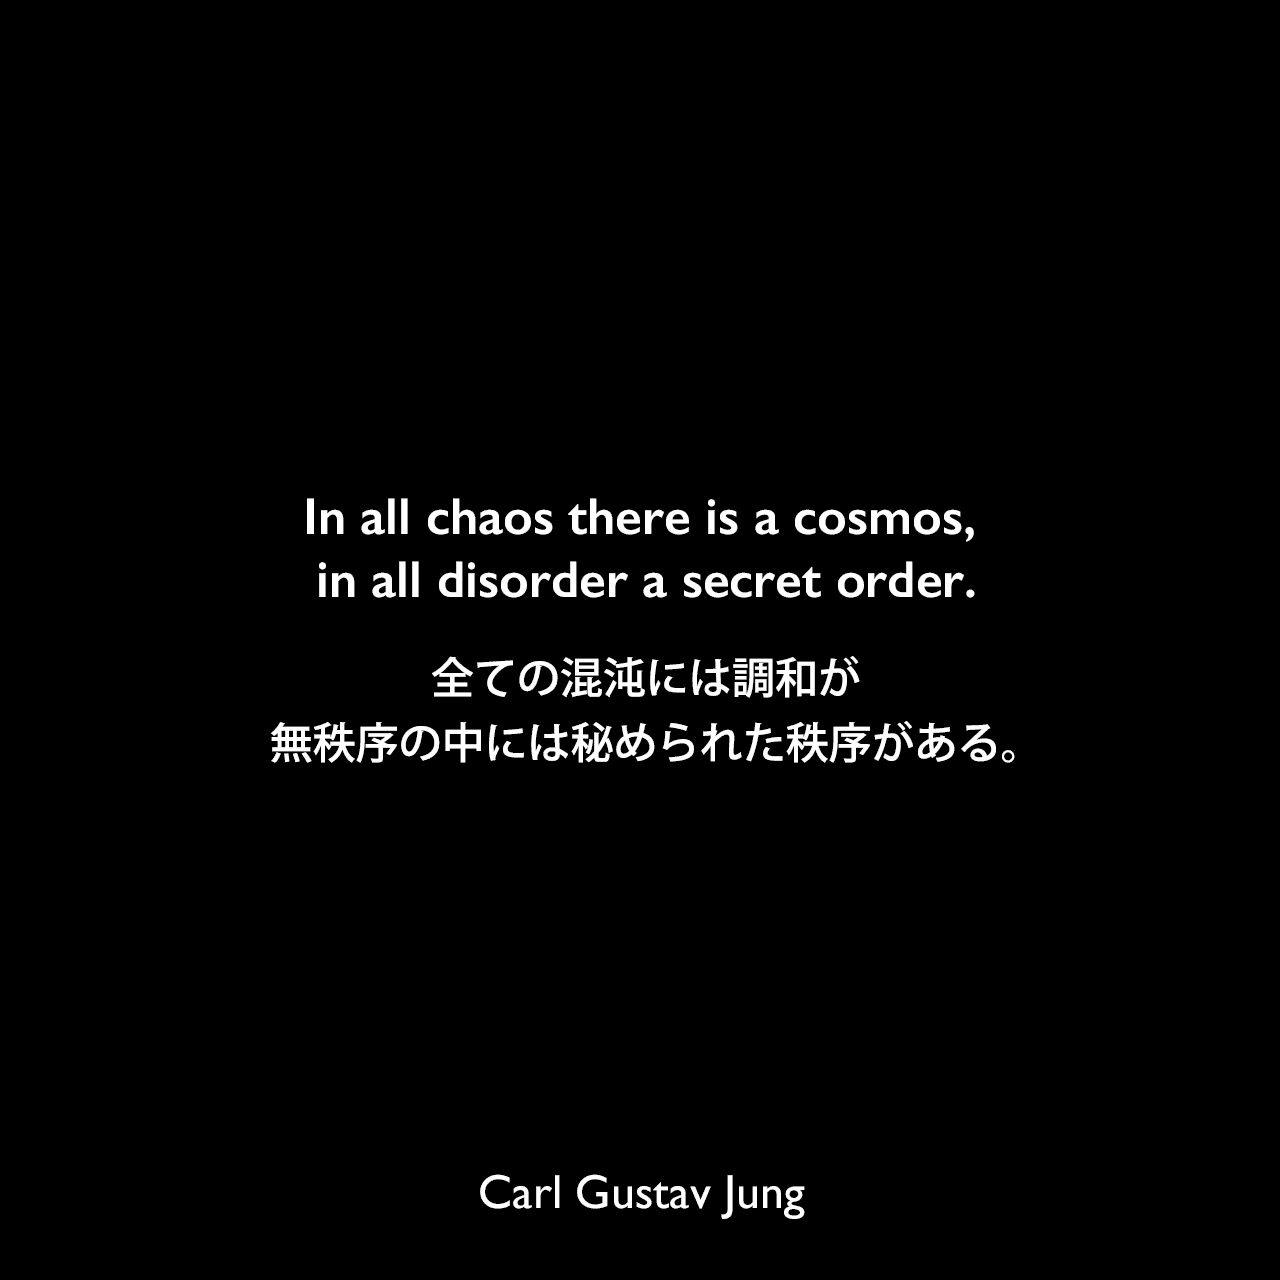 In all chaos there is a cosmos, in all disorder a secret order.全ての混沌には調和が、無秩序の中には秘められた秩序がある。-ユングによる本「Archetypes and the Collective Unconscious」よりCarl Gustav Jung